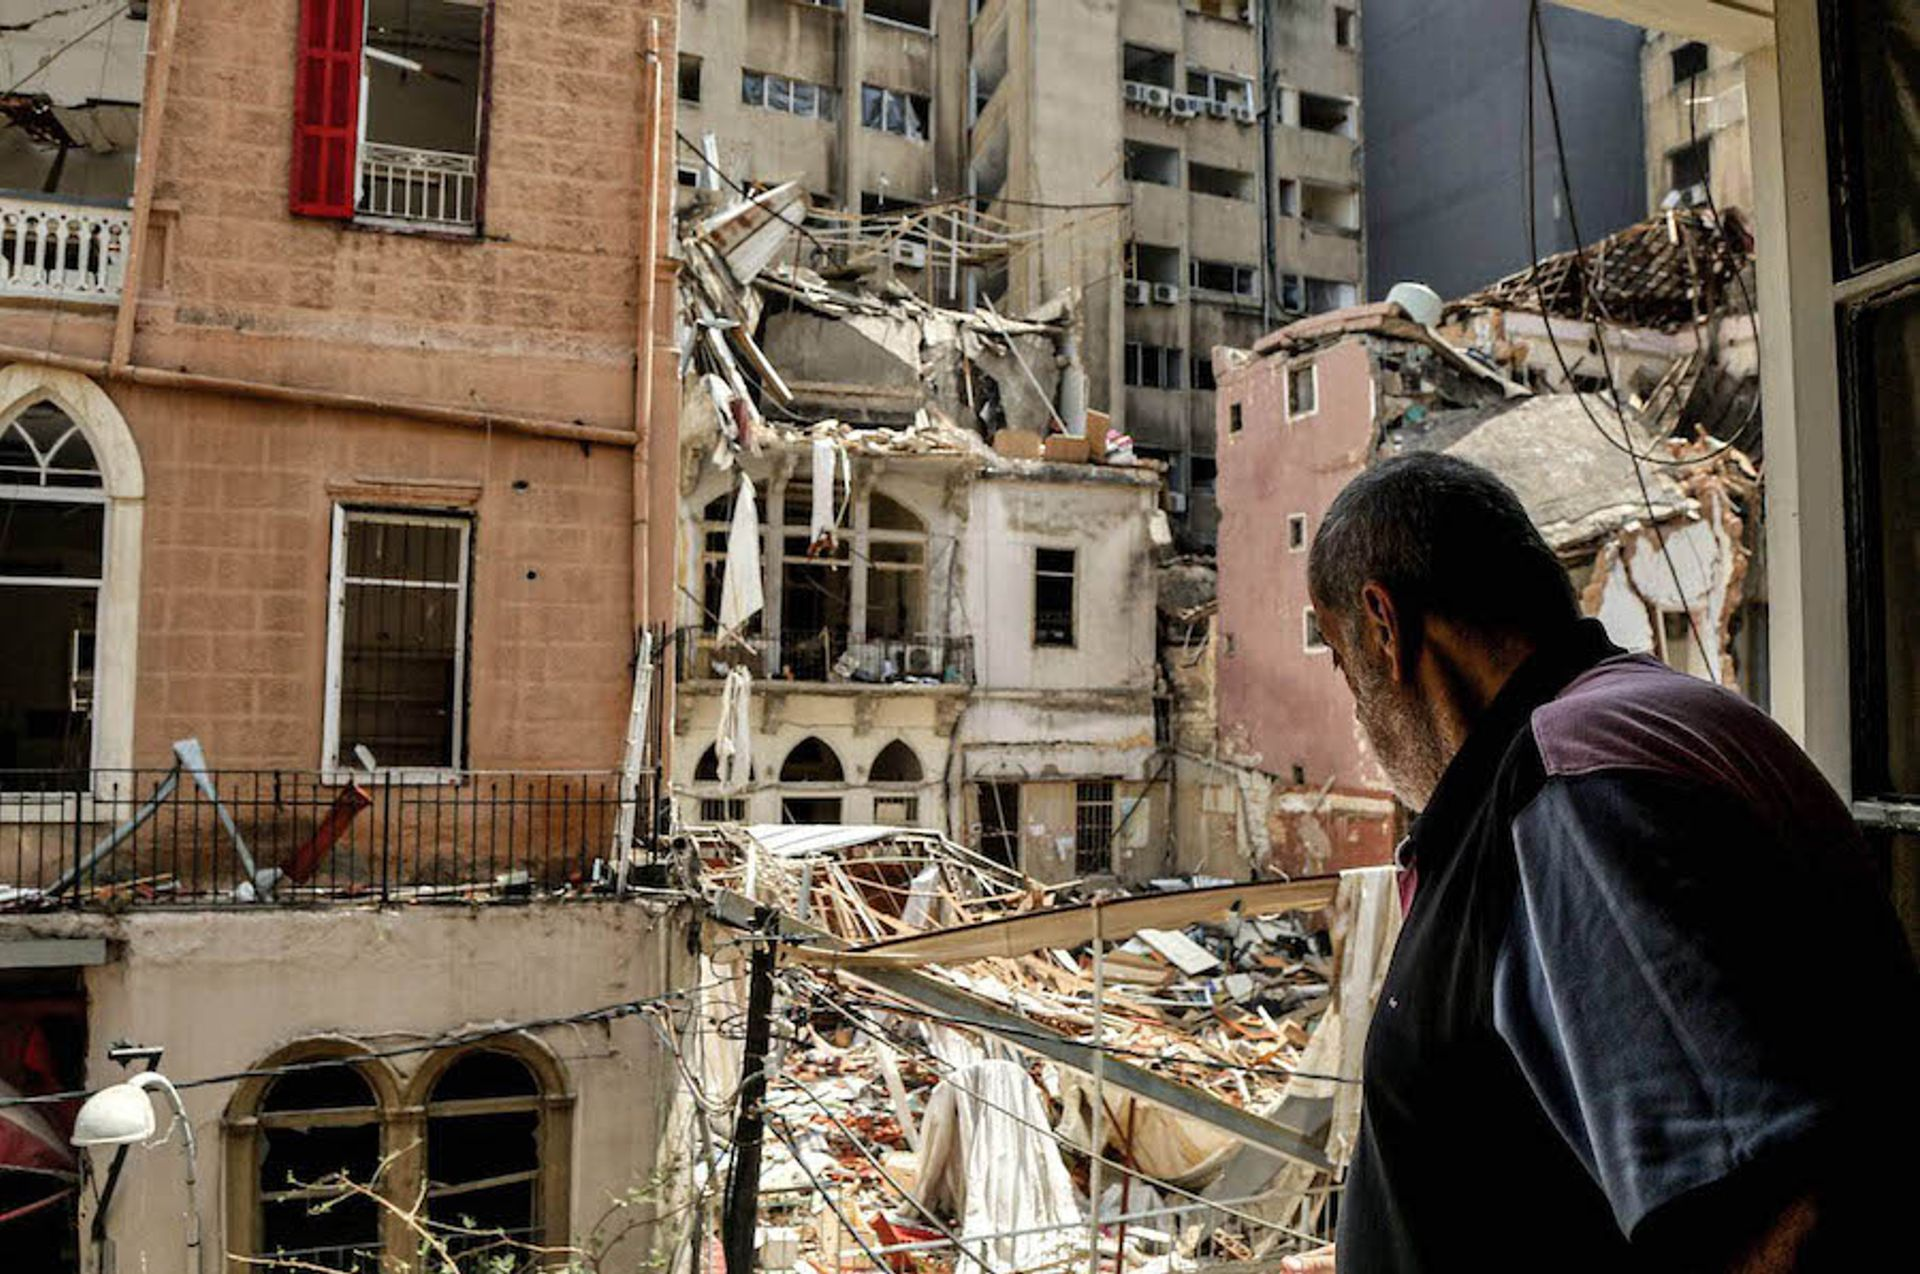 A man stares from a window towards the ruins of a heritage building in the Mar Mikhael neighbourhood, one of several historic districts in Beirut that bore the brunt of the explosion Marwan Naamani/dpa/Alamy Live News